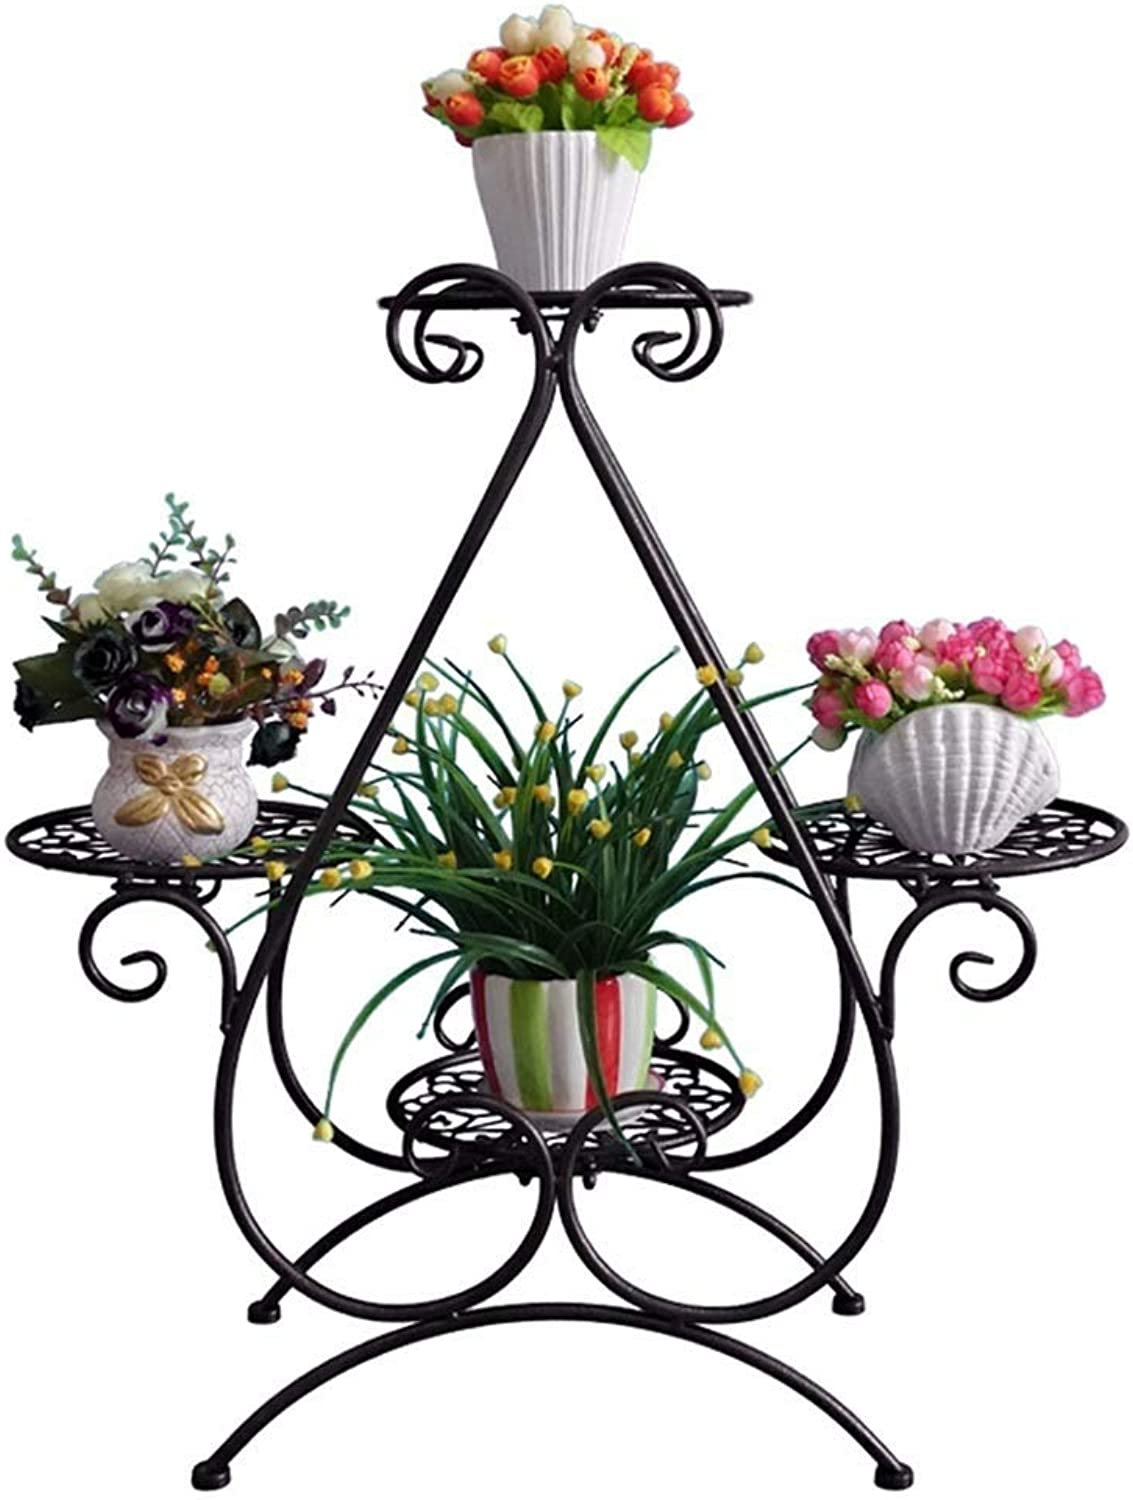 Plant Container Iron Flower Stand, Multi-Layer Plant Stand Decoration Indoor Living Room Balcony Flower Pot Rack 40x70cm